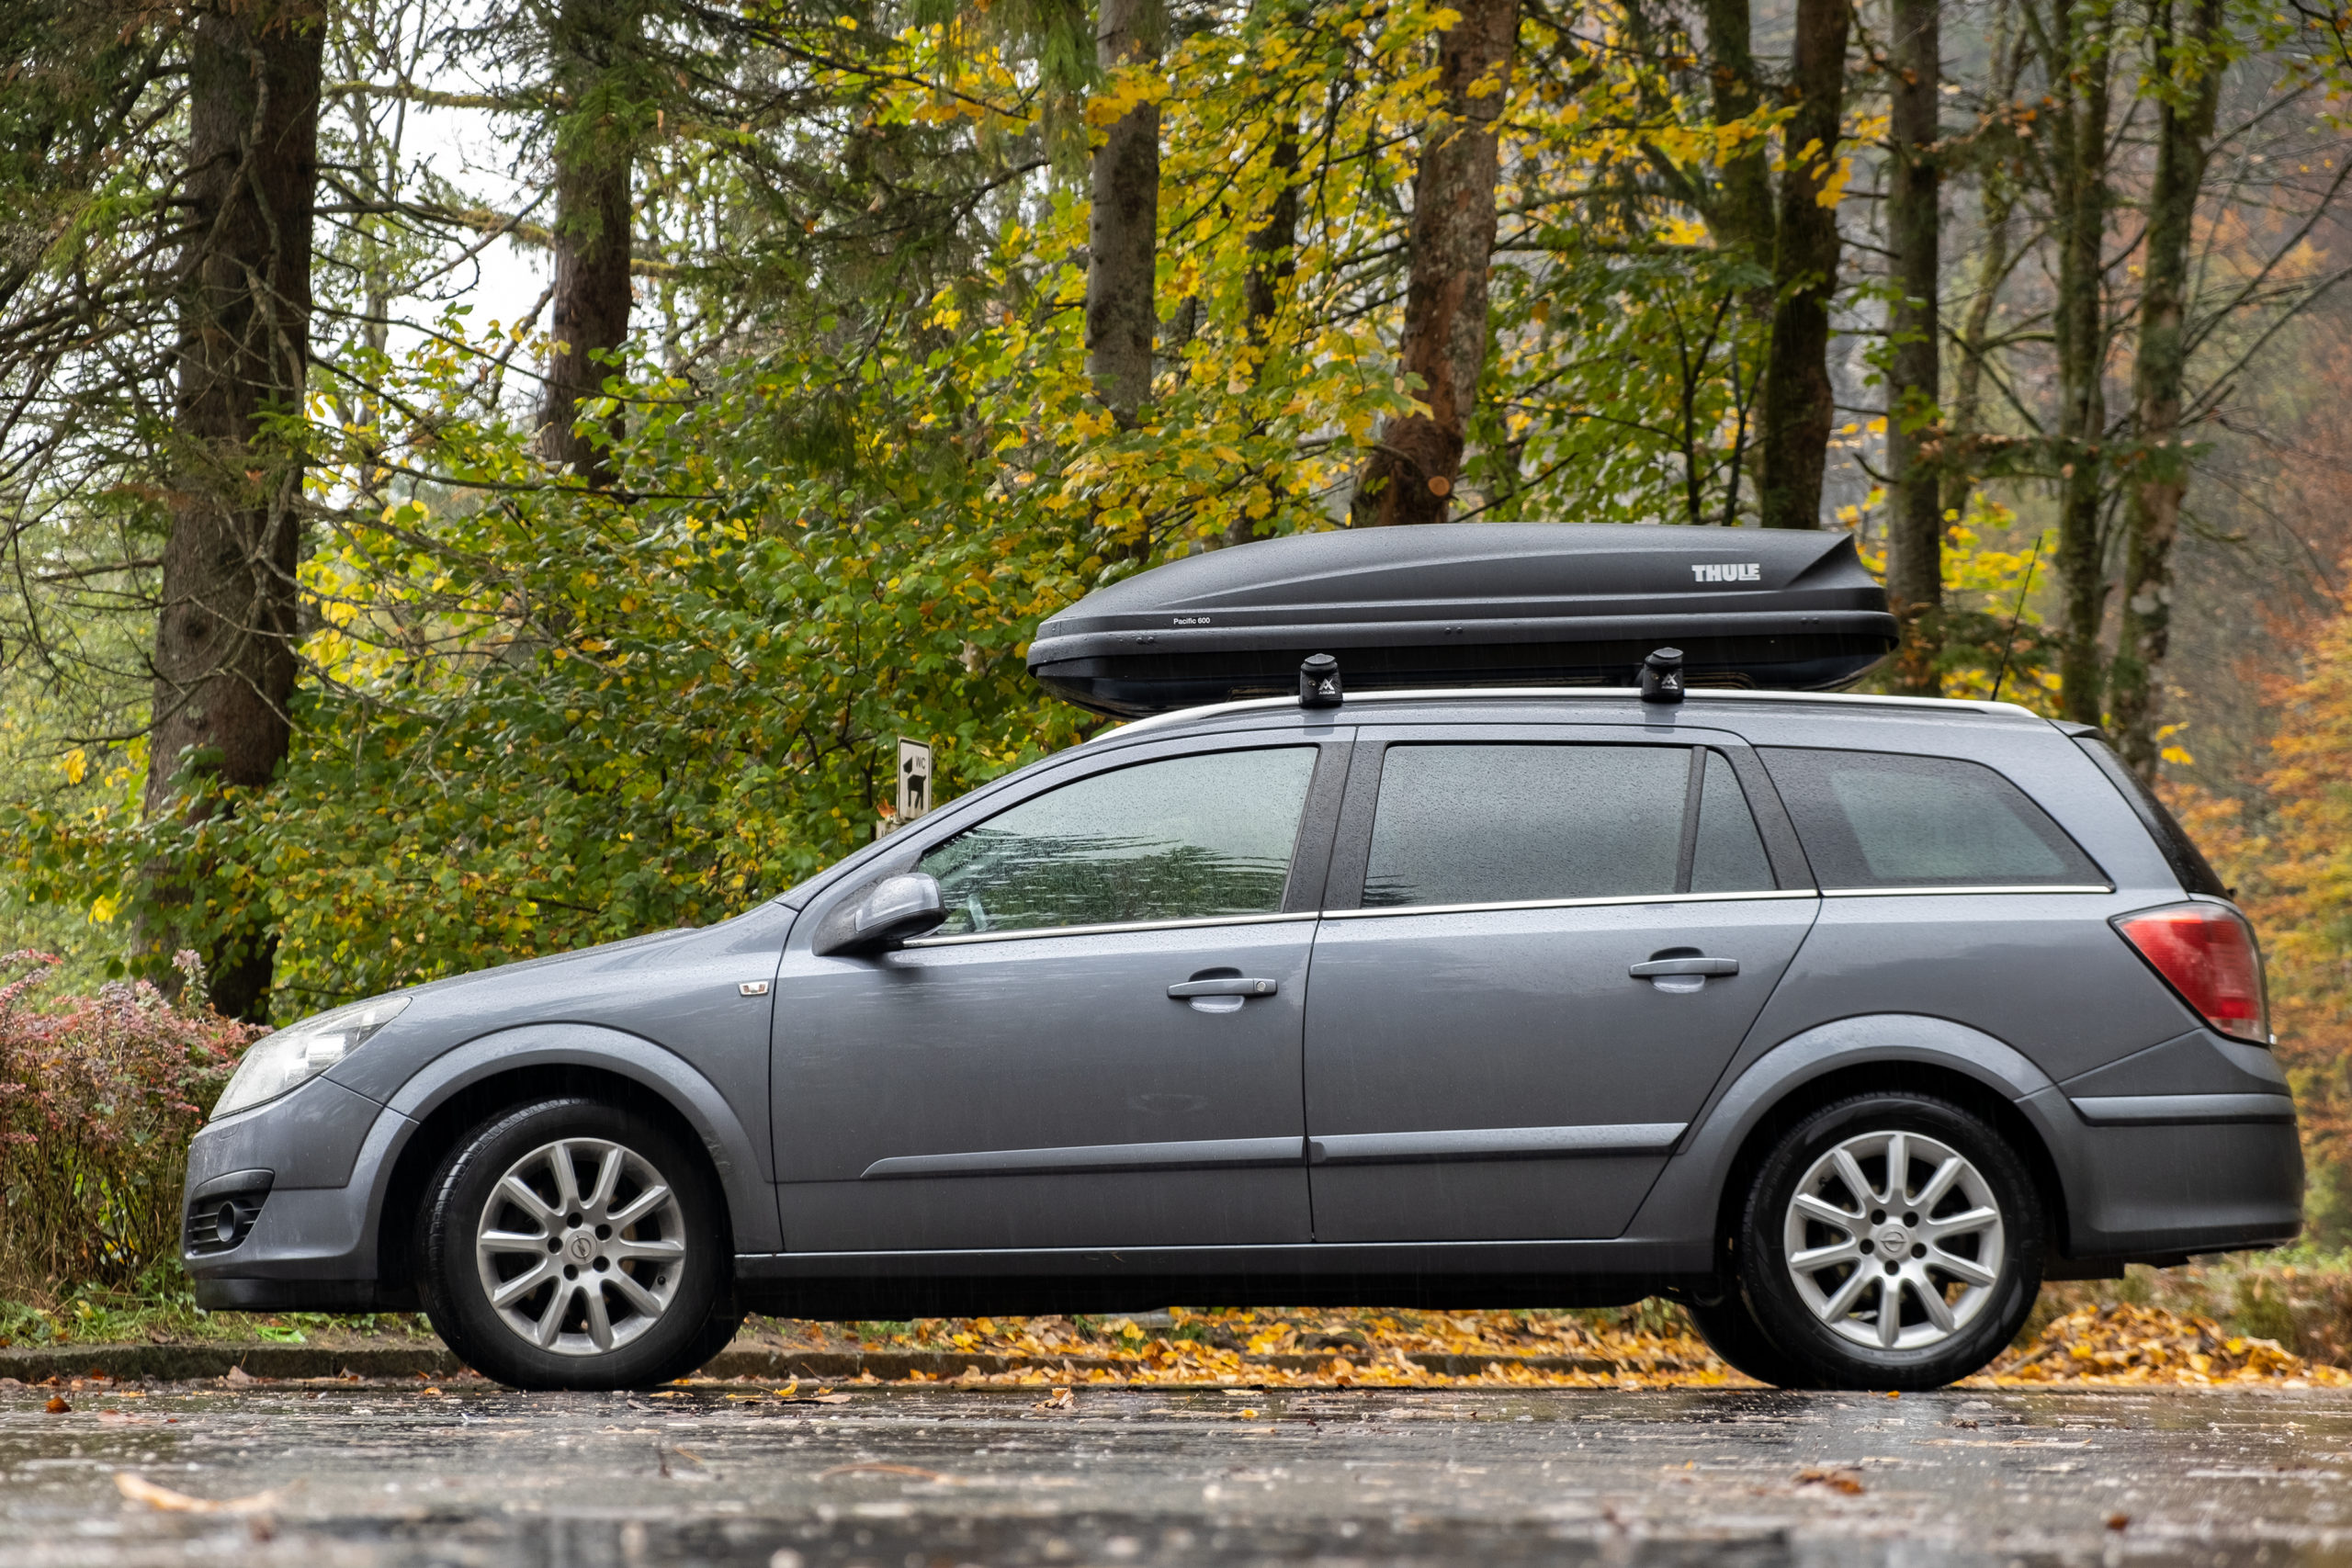 10 Best Cargo Boxes [Buying Guide]